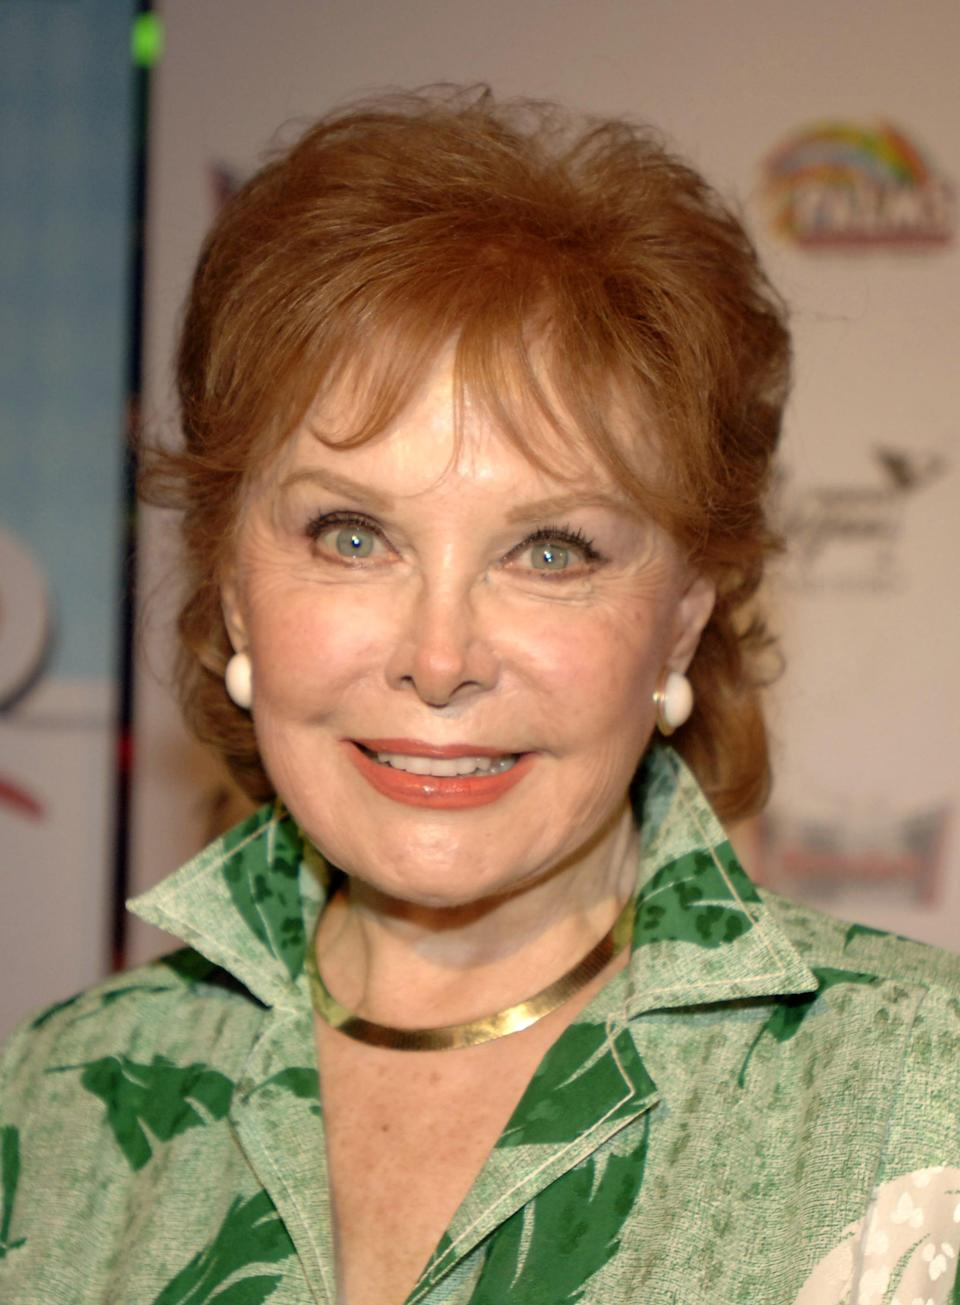 "<p>The <strong>Spellbound</strong> actress, known as the ""Queen of Technicolor,"" <a href=""https://www.hollywoodreporter.com/news/rhonda-fleming-dead-star-big-912522"" class=""link rapid-noclick-resp"" rel=""nofollow noopener"" target=""_blank"" data-ylk=""slk:died at age 97 in October"">died at age 97 in October</a>.</p>"